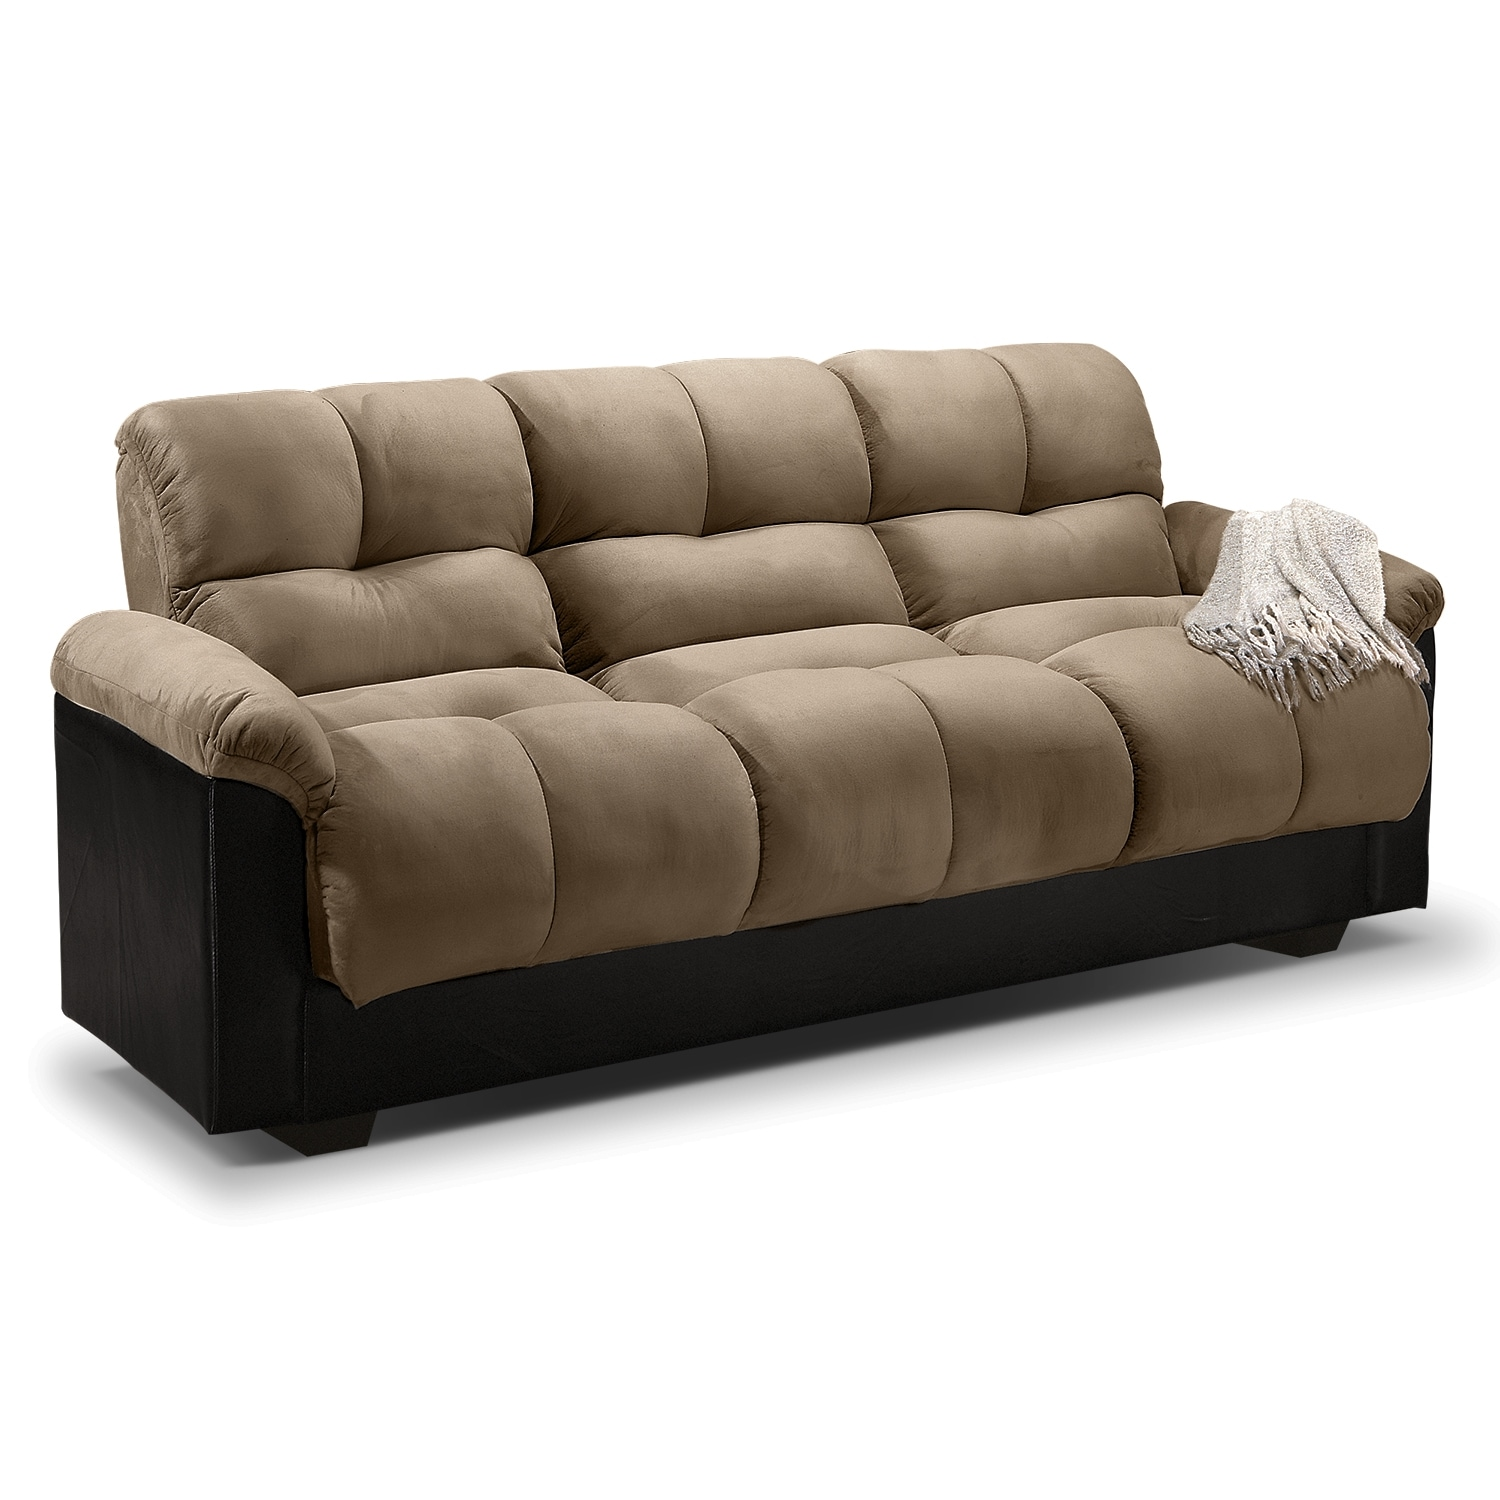 Crawford Futon Sofa Bed With Storage